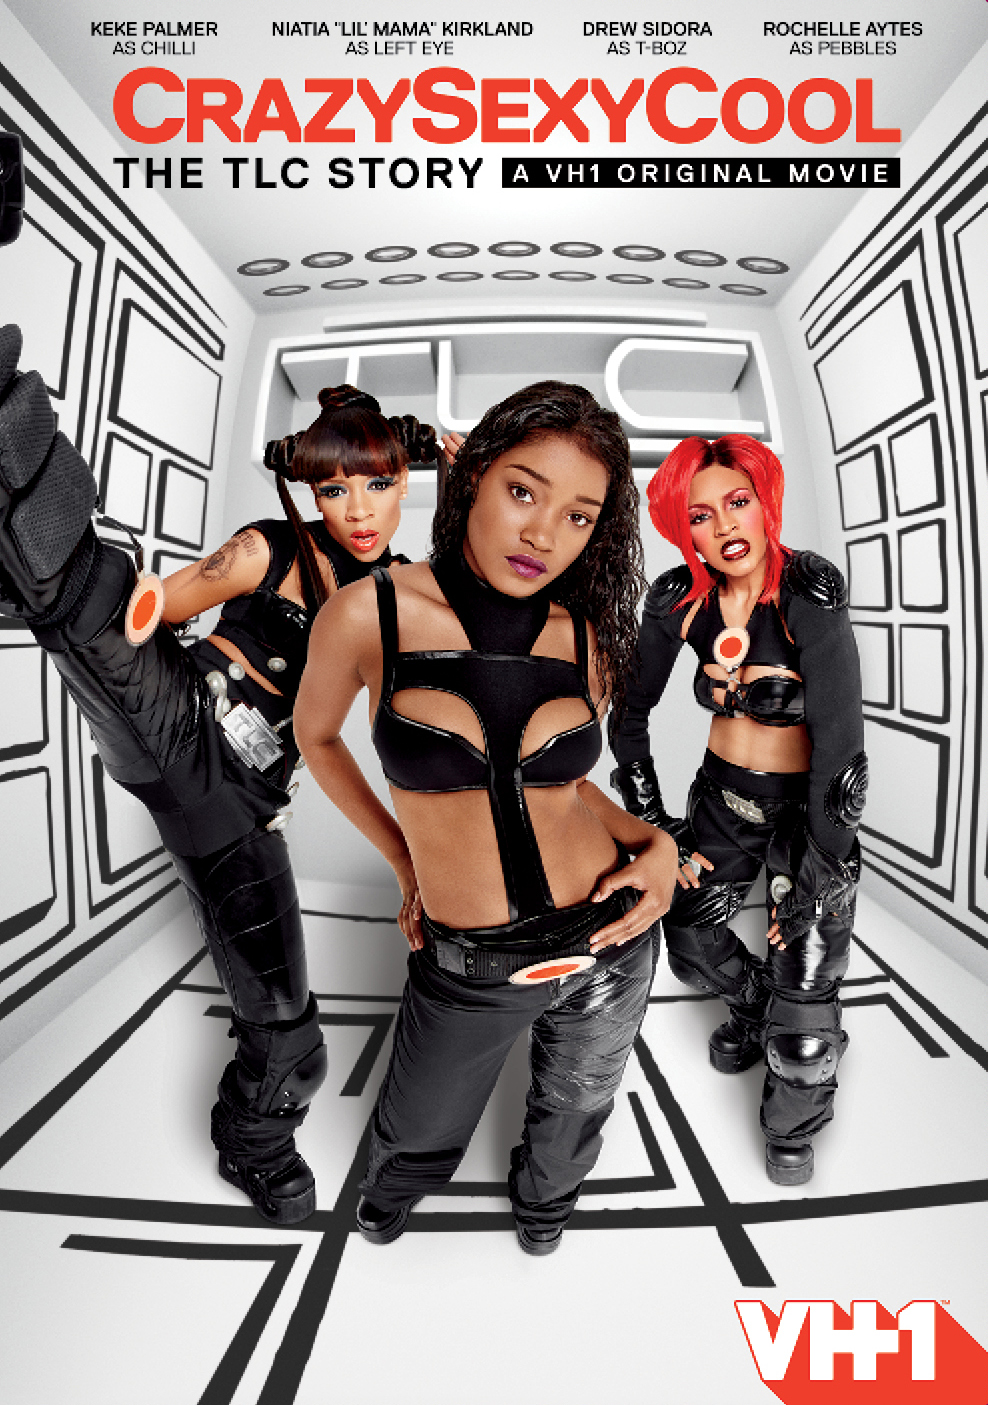 CrazySexyCool The TLC Story DVD